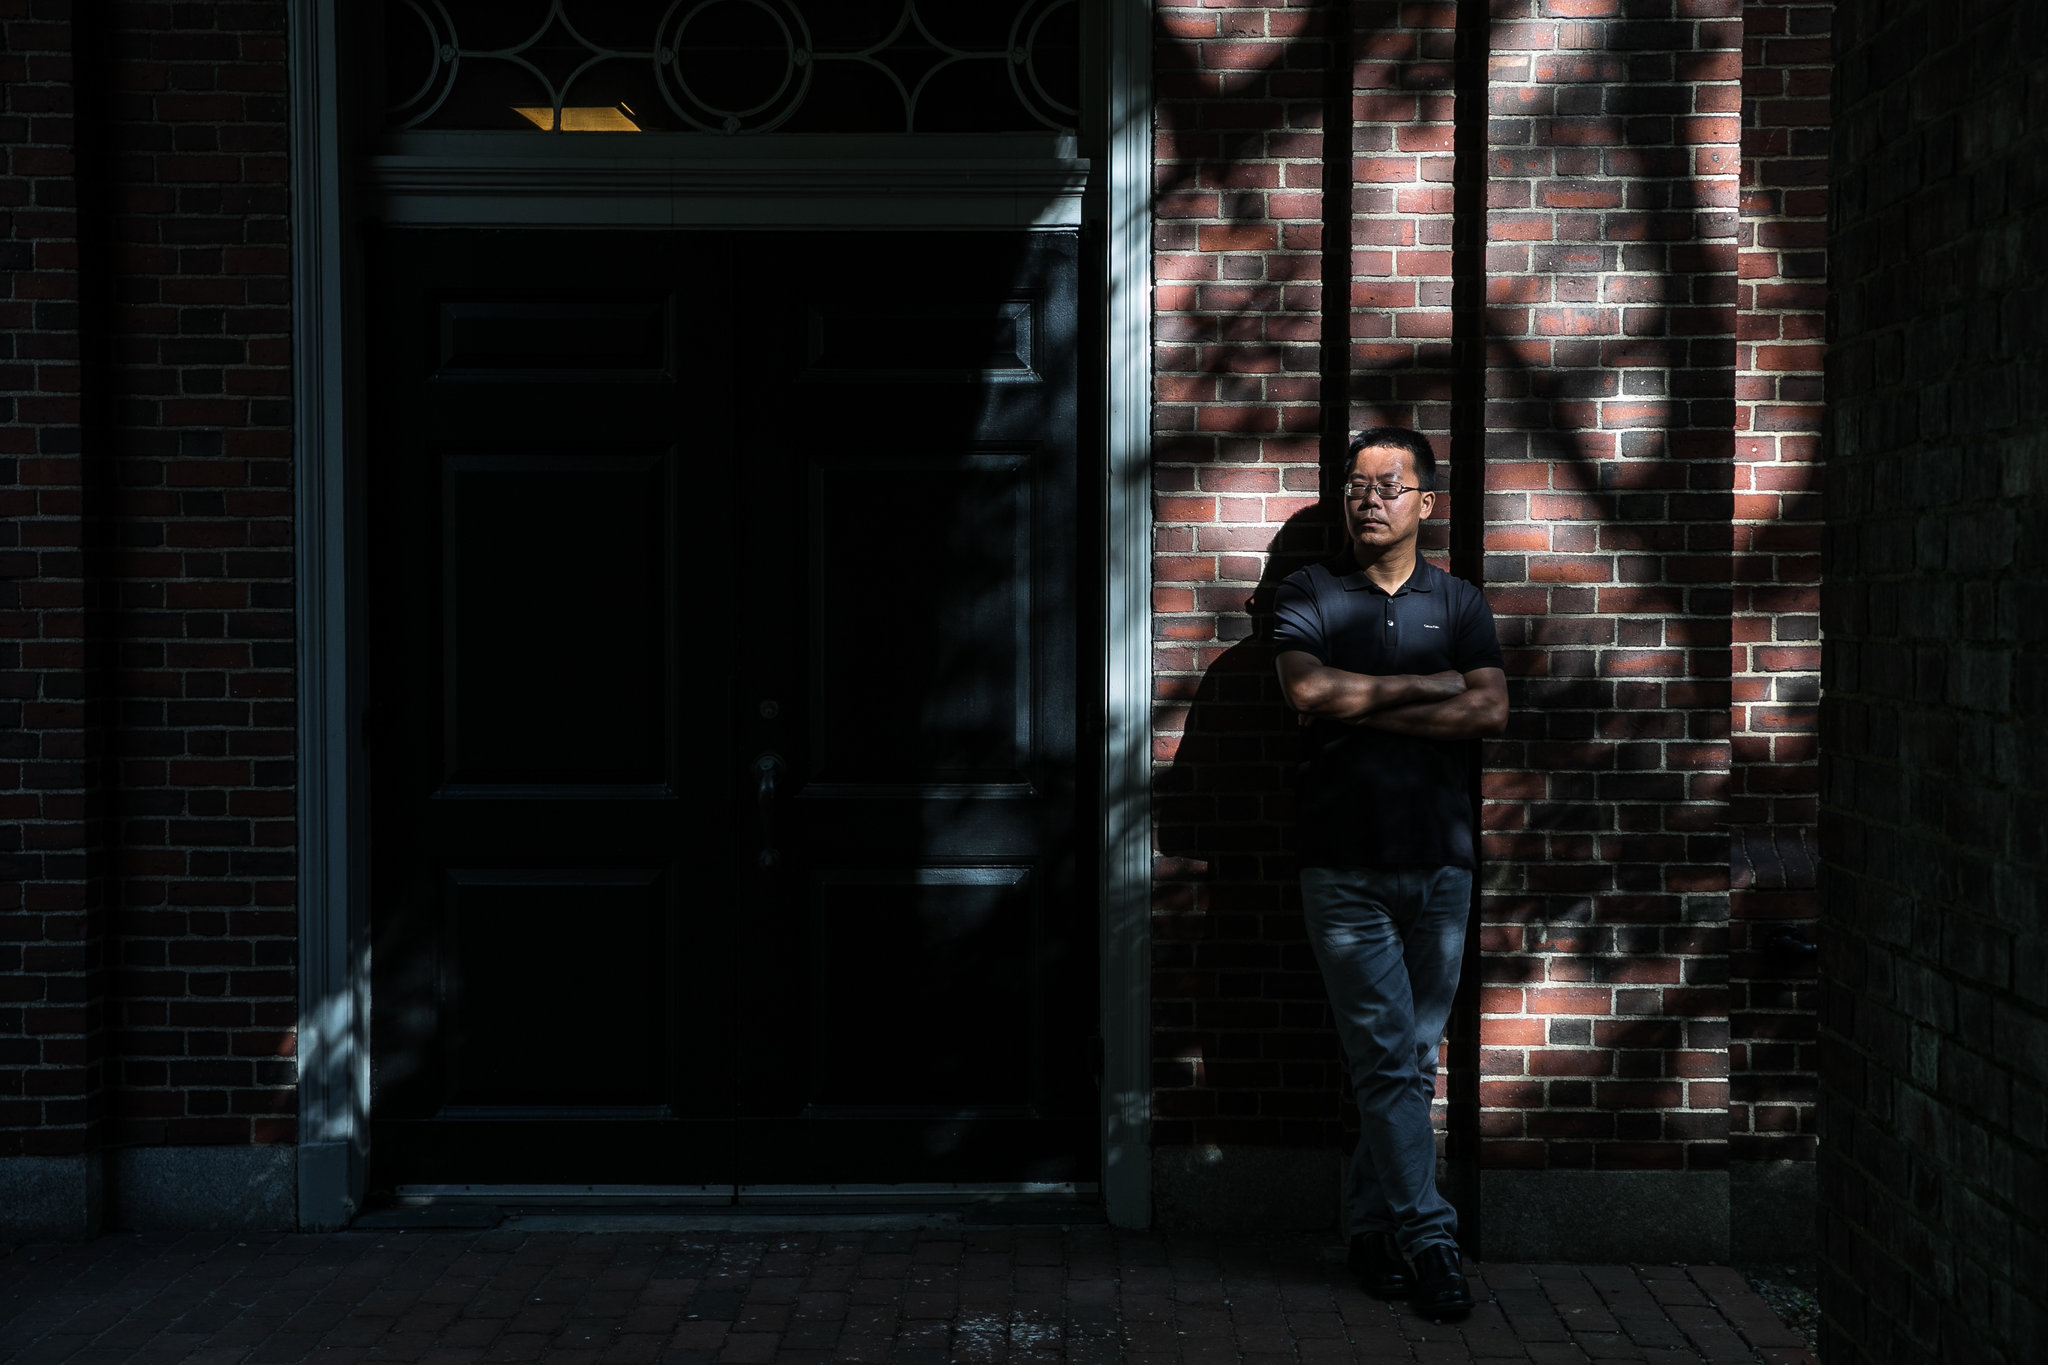 Teng Biao, a Chinese human rights lawyer who moved to the United States after being harassed by the Chinese authorities, has criticized China's coercion of foreigners to bend to its point of view.